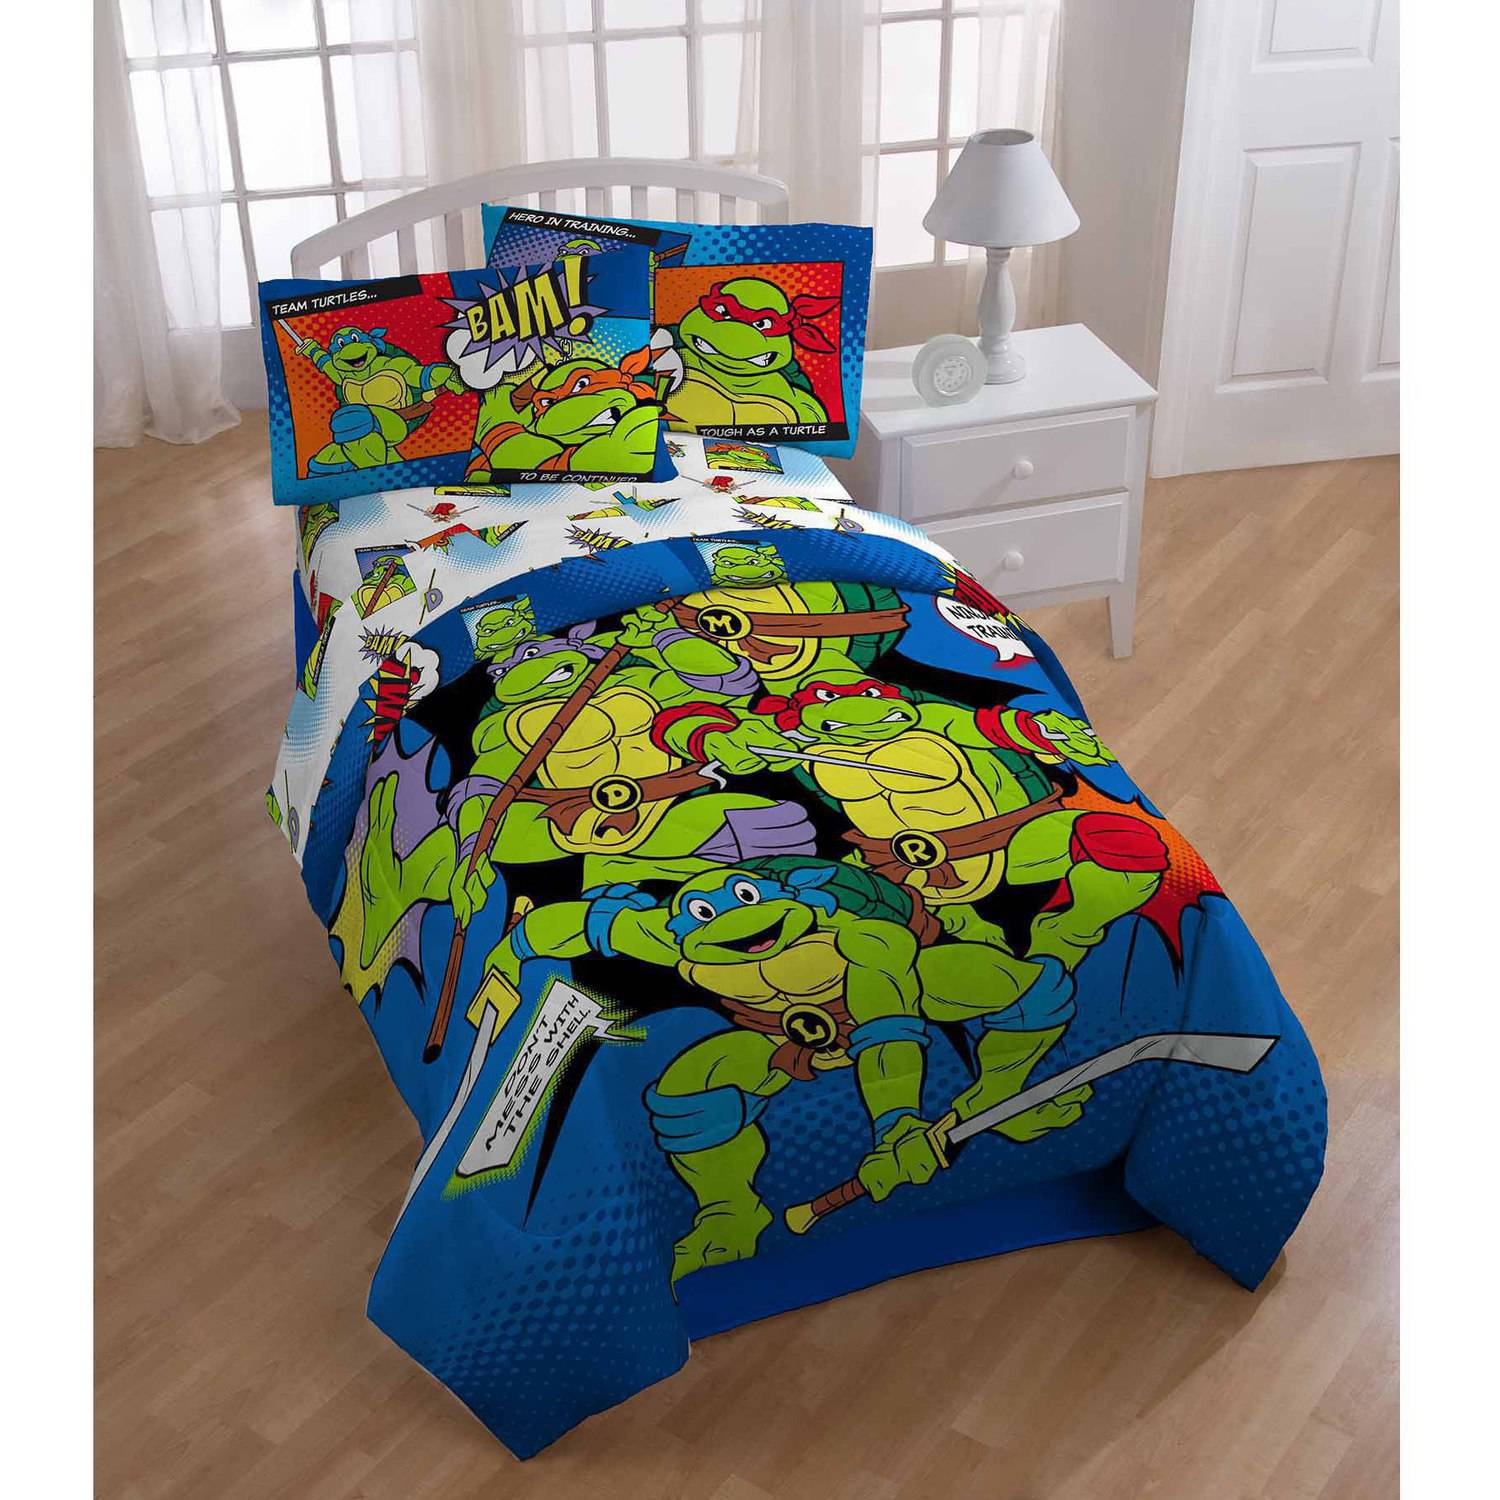 Avengers bedding set twin - Teenage Mutant Ninja Turtles Bam Kapow Twin Full Comforter Walmart Com